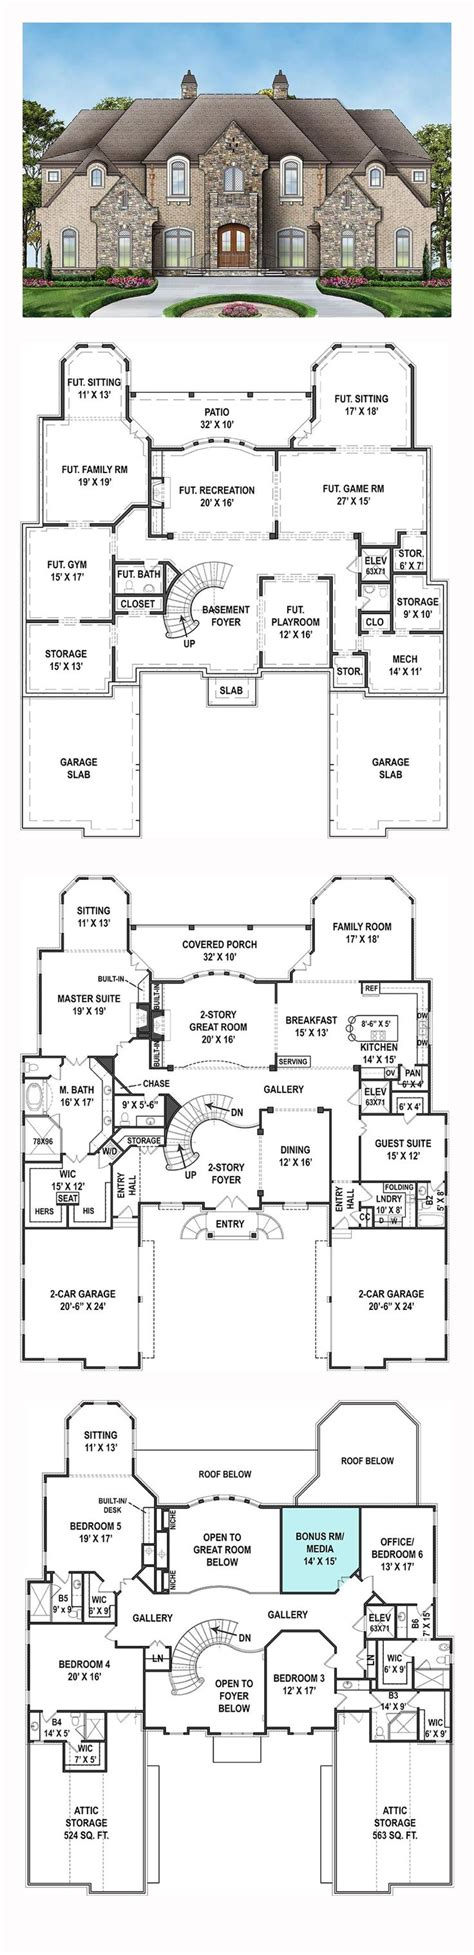 luxury house blueprints best 25 family house plans ideas on sims 3